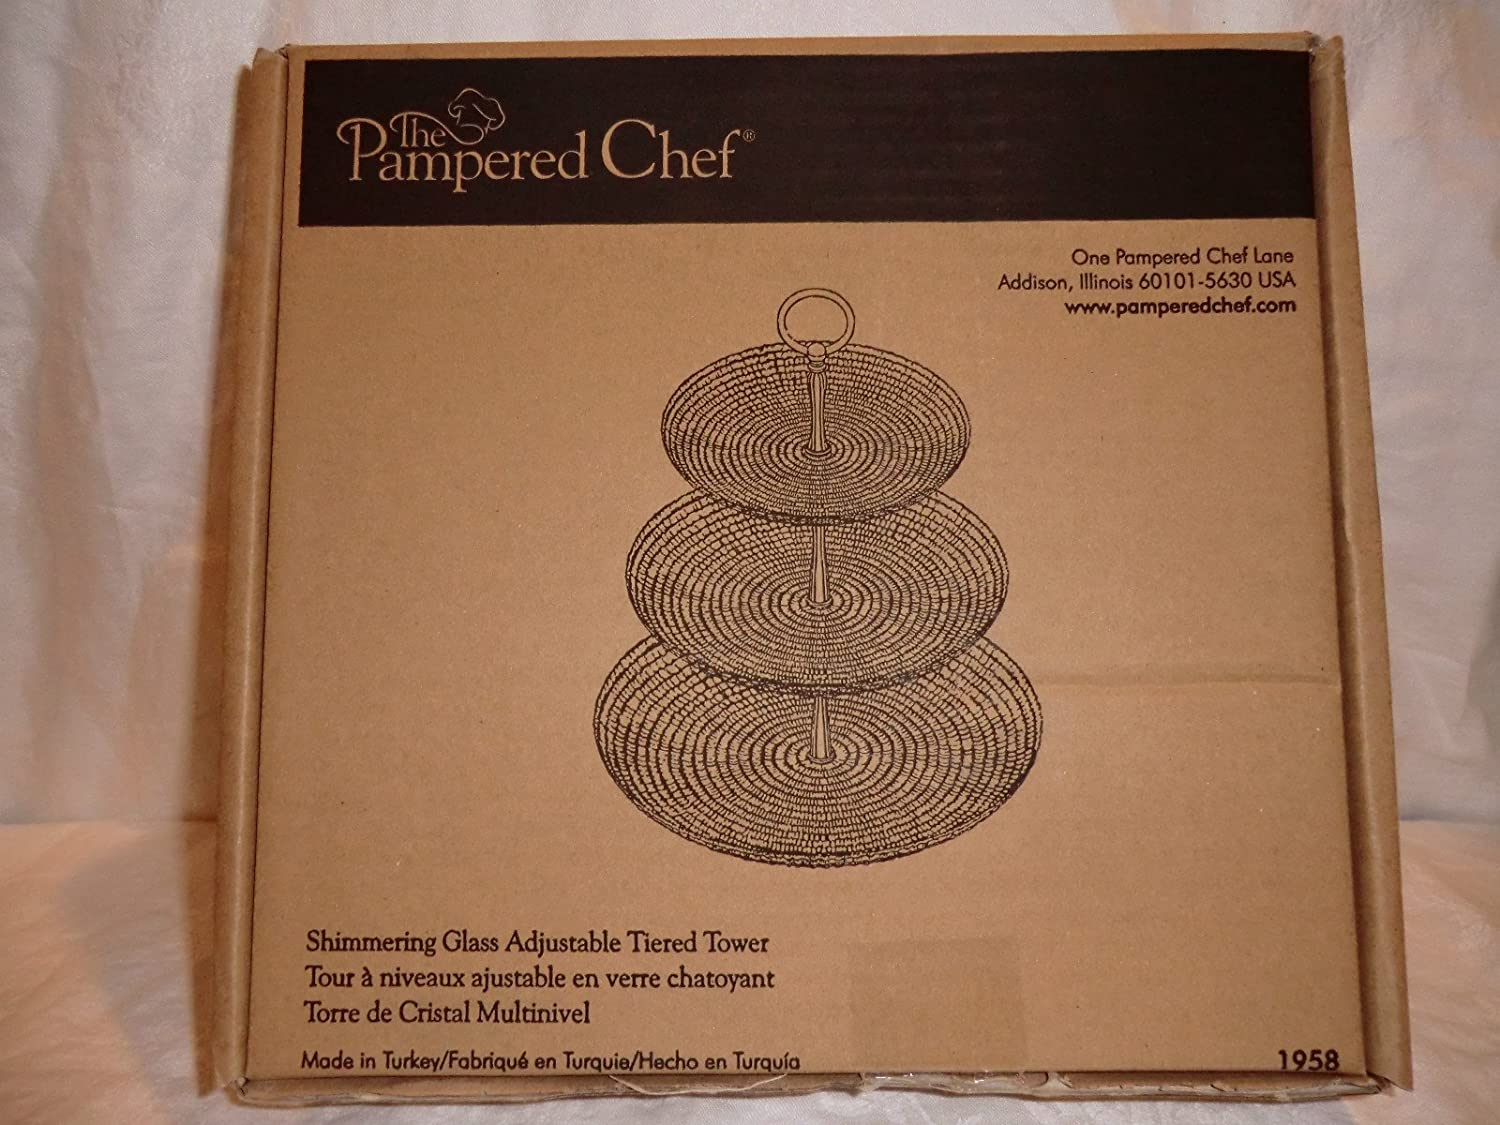 Pampered Chef Shimmering Glass Adjustable Tiered Tower #1958 Serving Plates